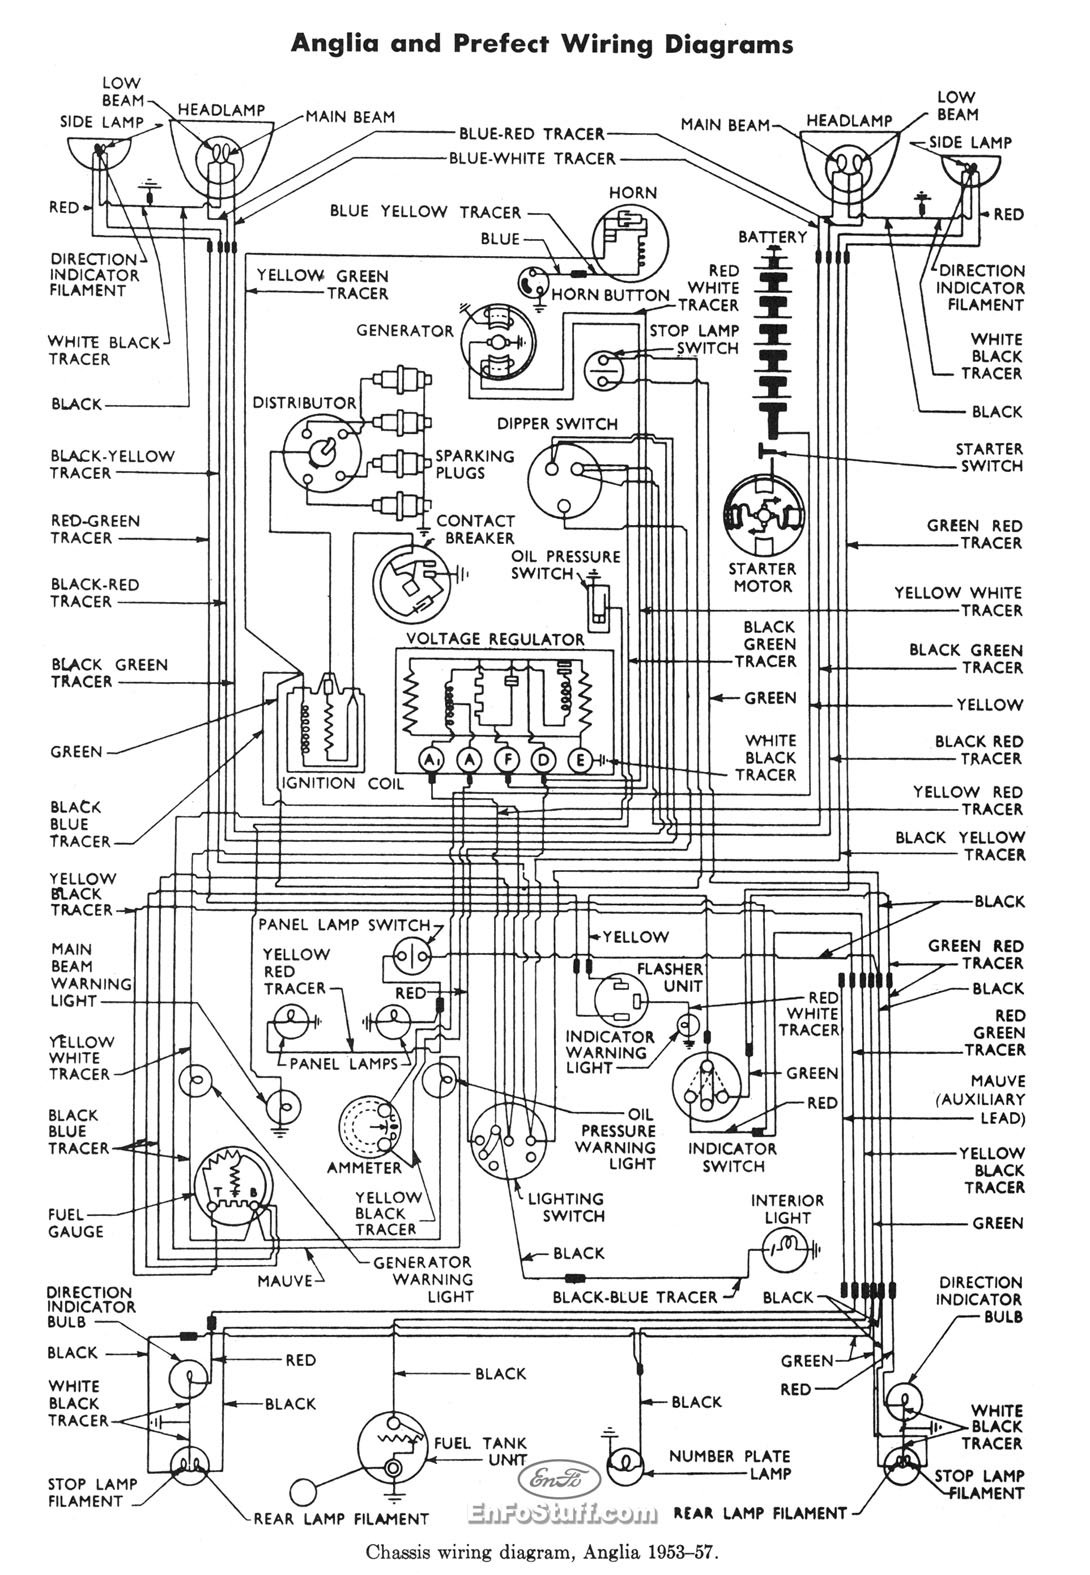 ford anglia 1953 57 wiring diagram wiring diagram for ford anglia 1953 57 Old Ford Tractor Wiring Diagram at fashall.co